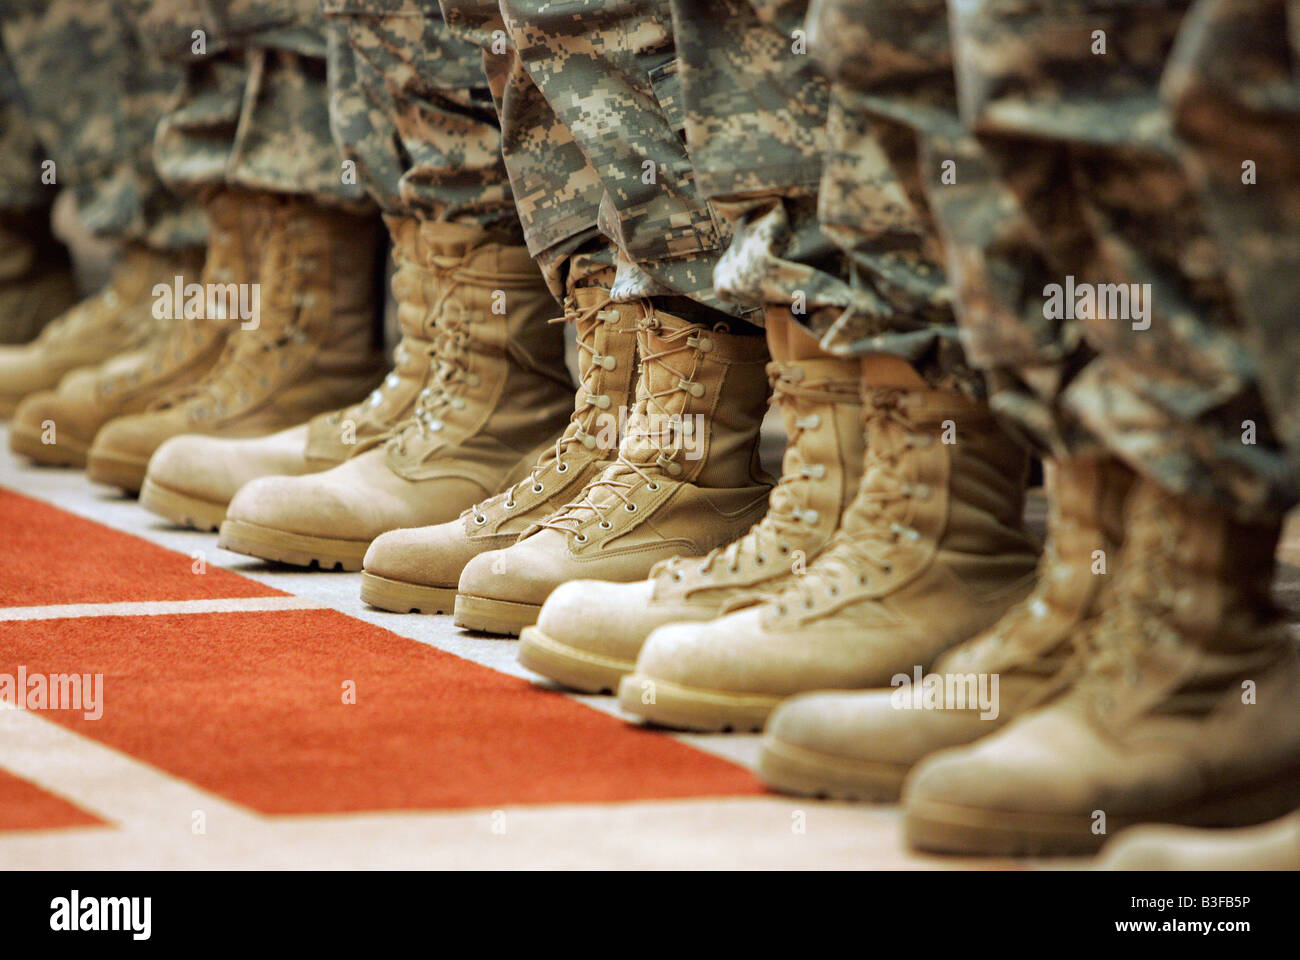 Military boots of Army National Guard soldiers in formation - Stock Image